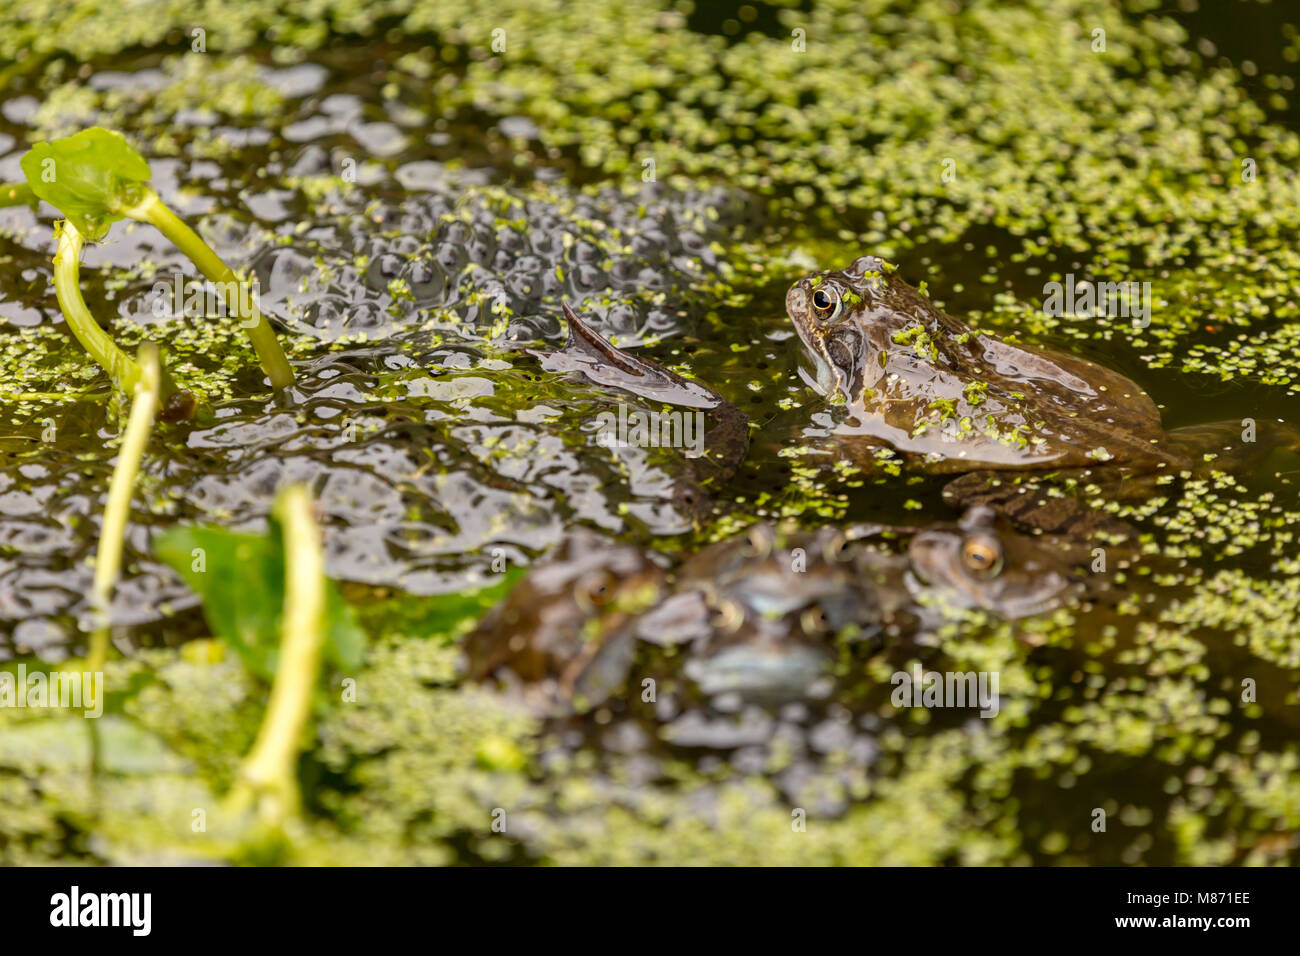 Common Frogs mating in garden pond covered with blanket weed,England - Stock Image